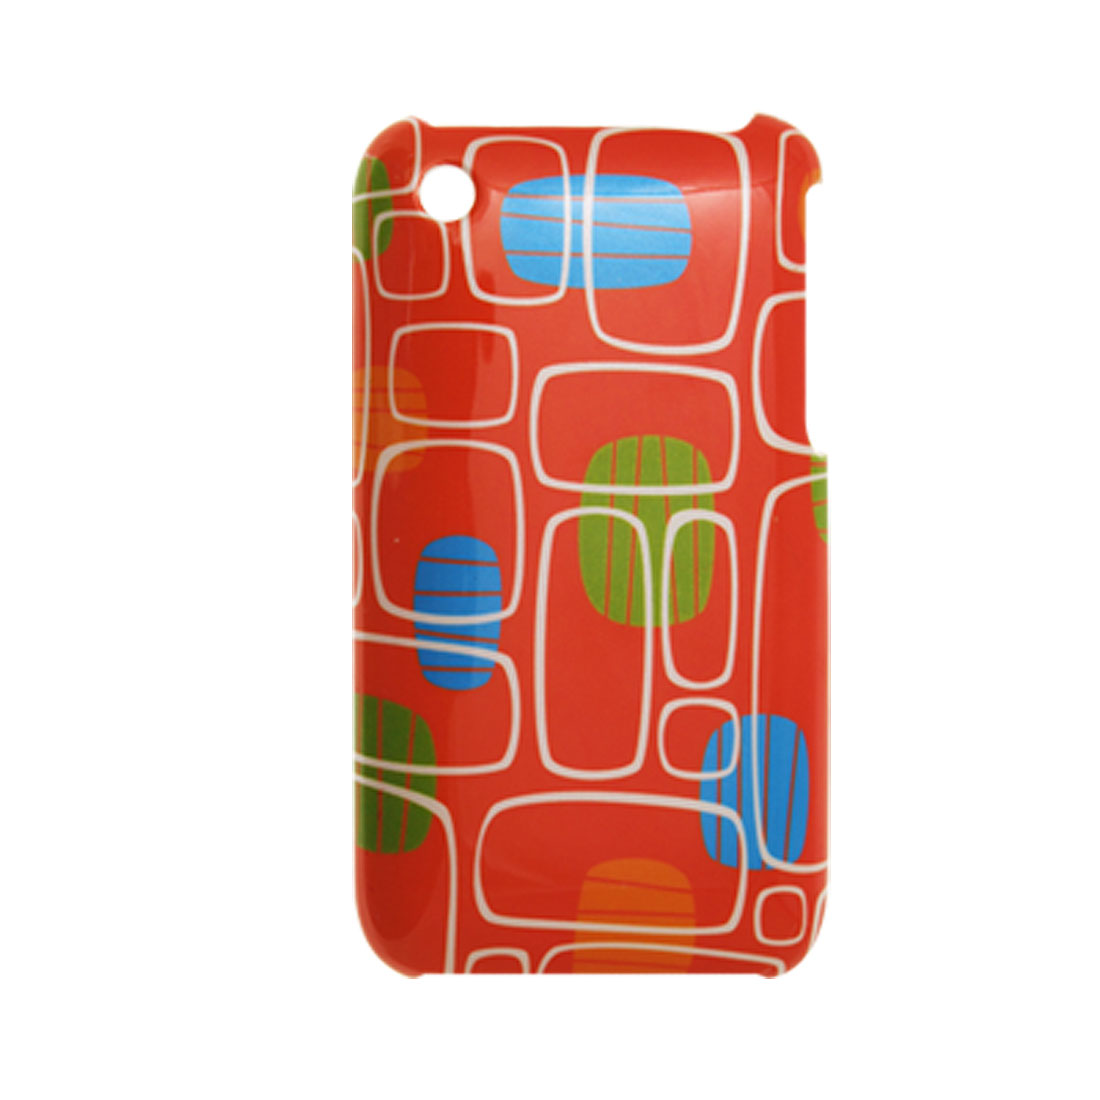 Orange Hard Plastic Case Protector w Patterns for Apple iPhone 3G